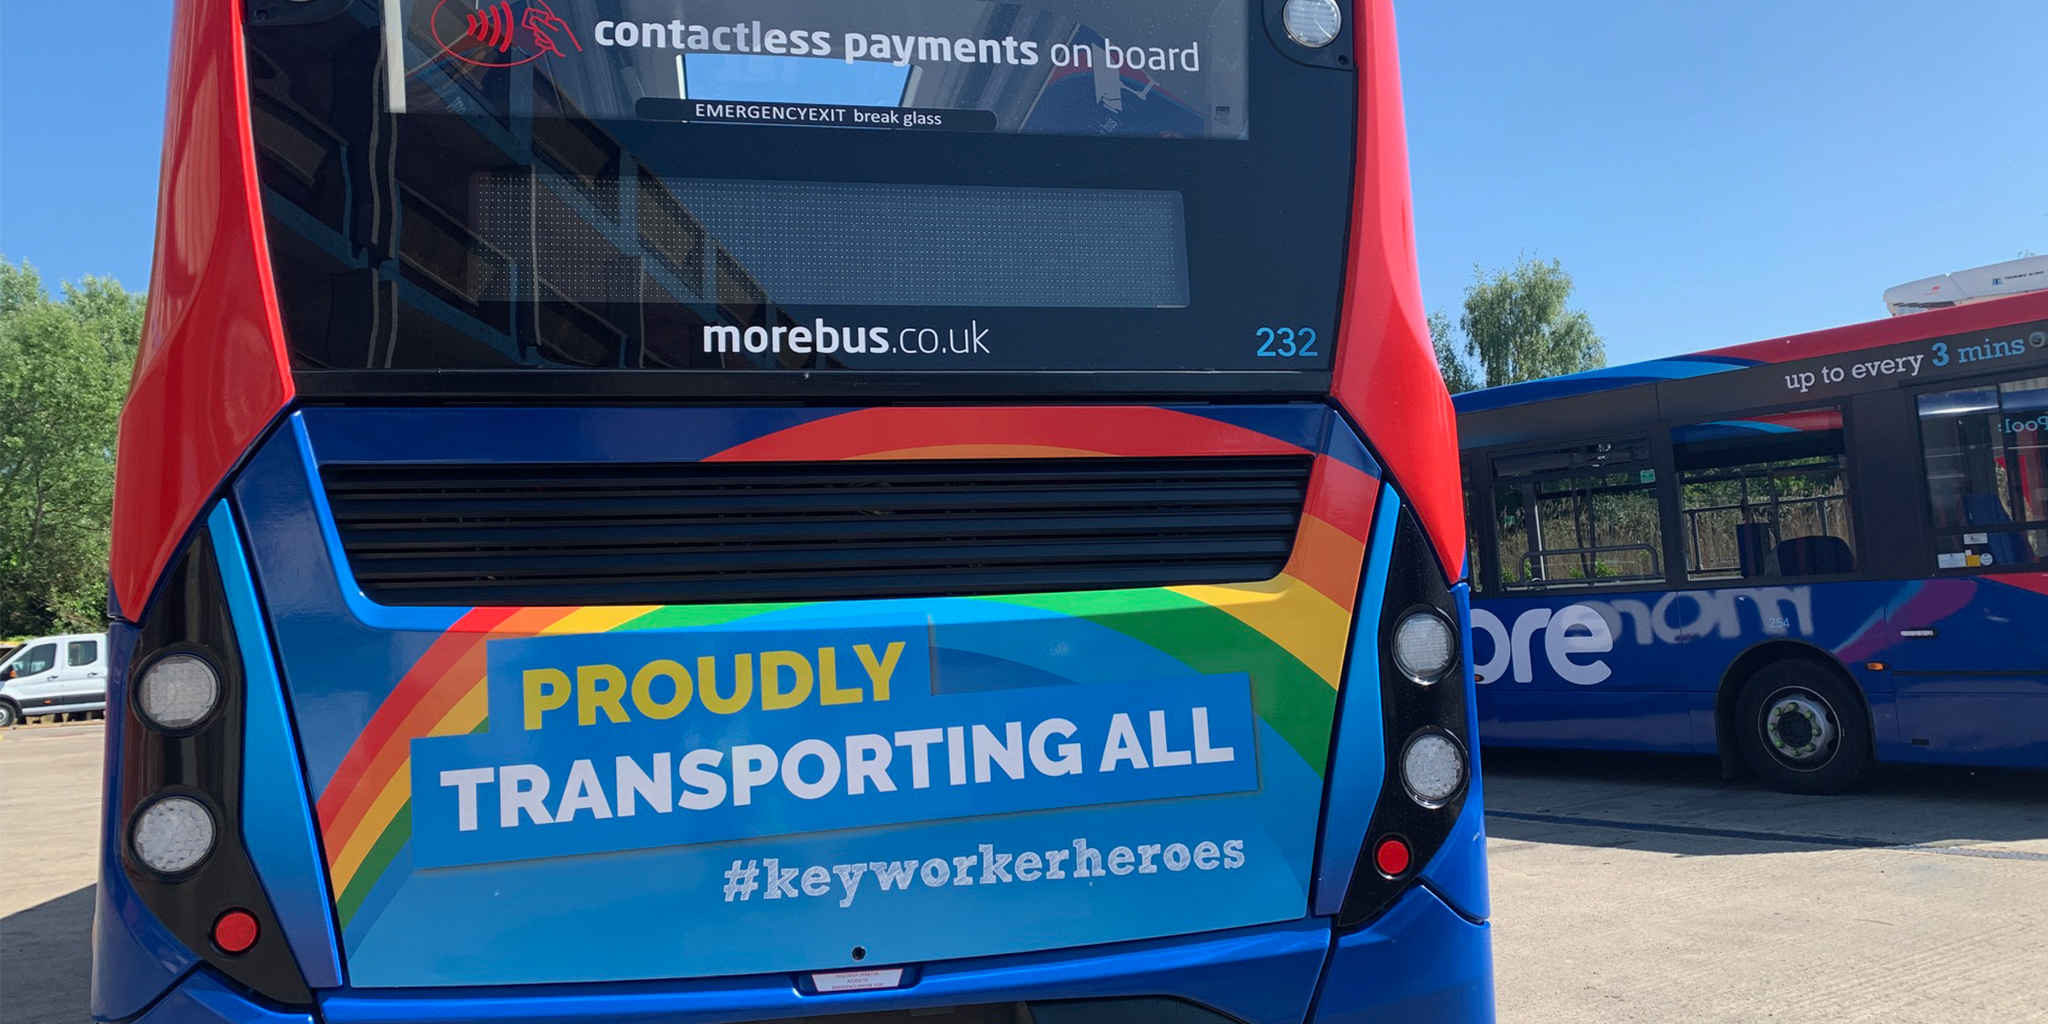 A photo of a morebus with a rear design reading 'proudly transporting all #keyworkerheroes'